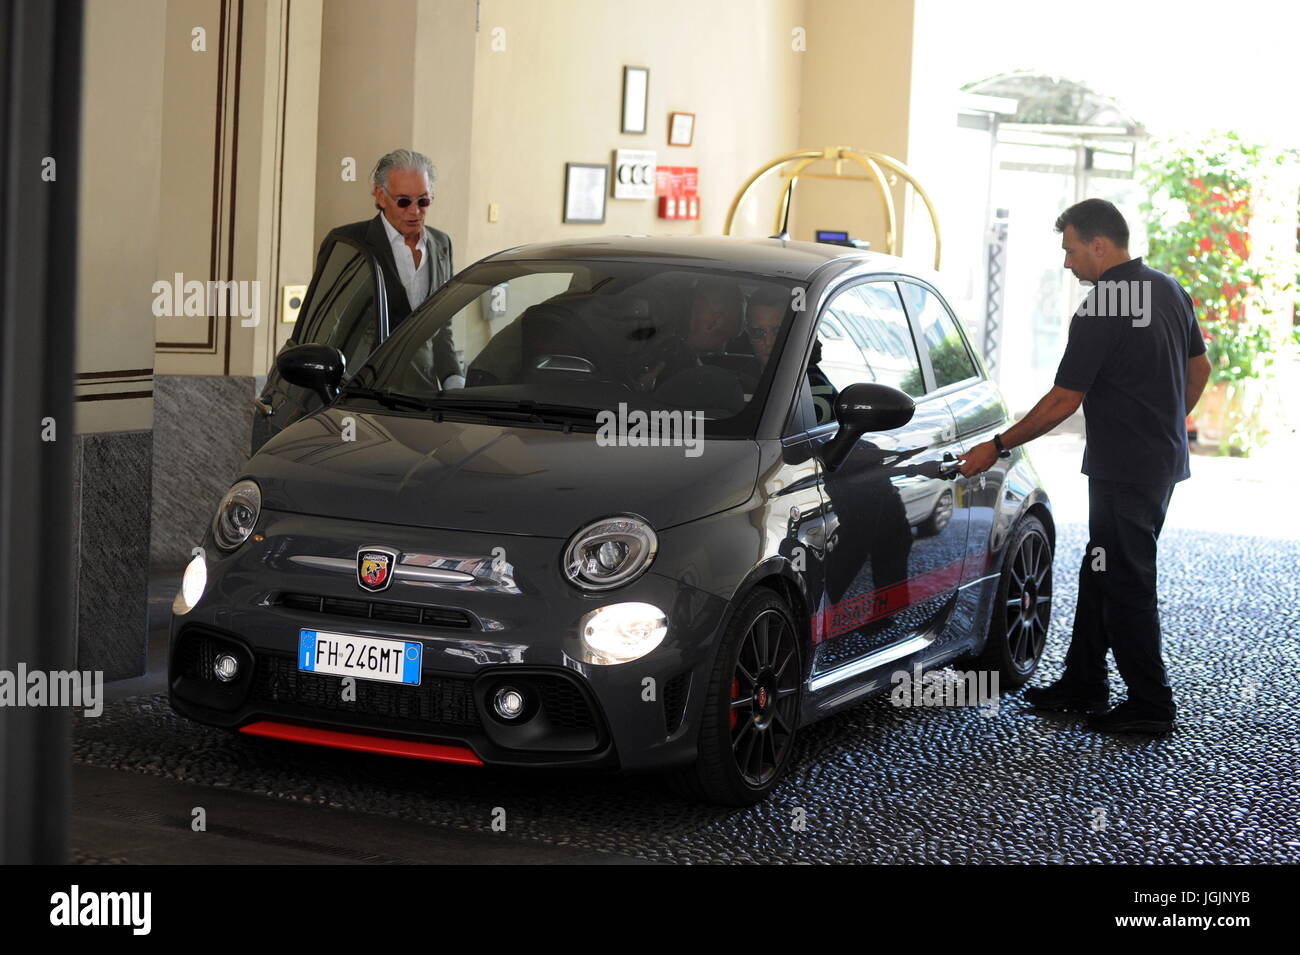 Milan, Lapo Elkann goes to lunch in downtown with Fiat500 anniversary sweater Lapo Elkann arrives in the center Stock Photo